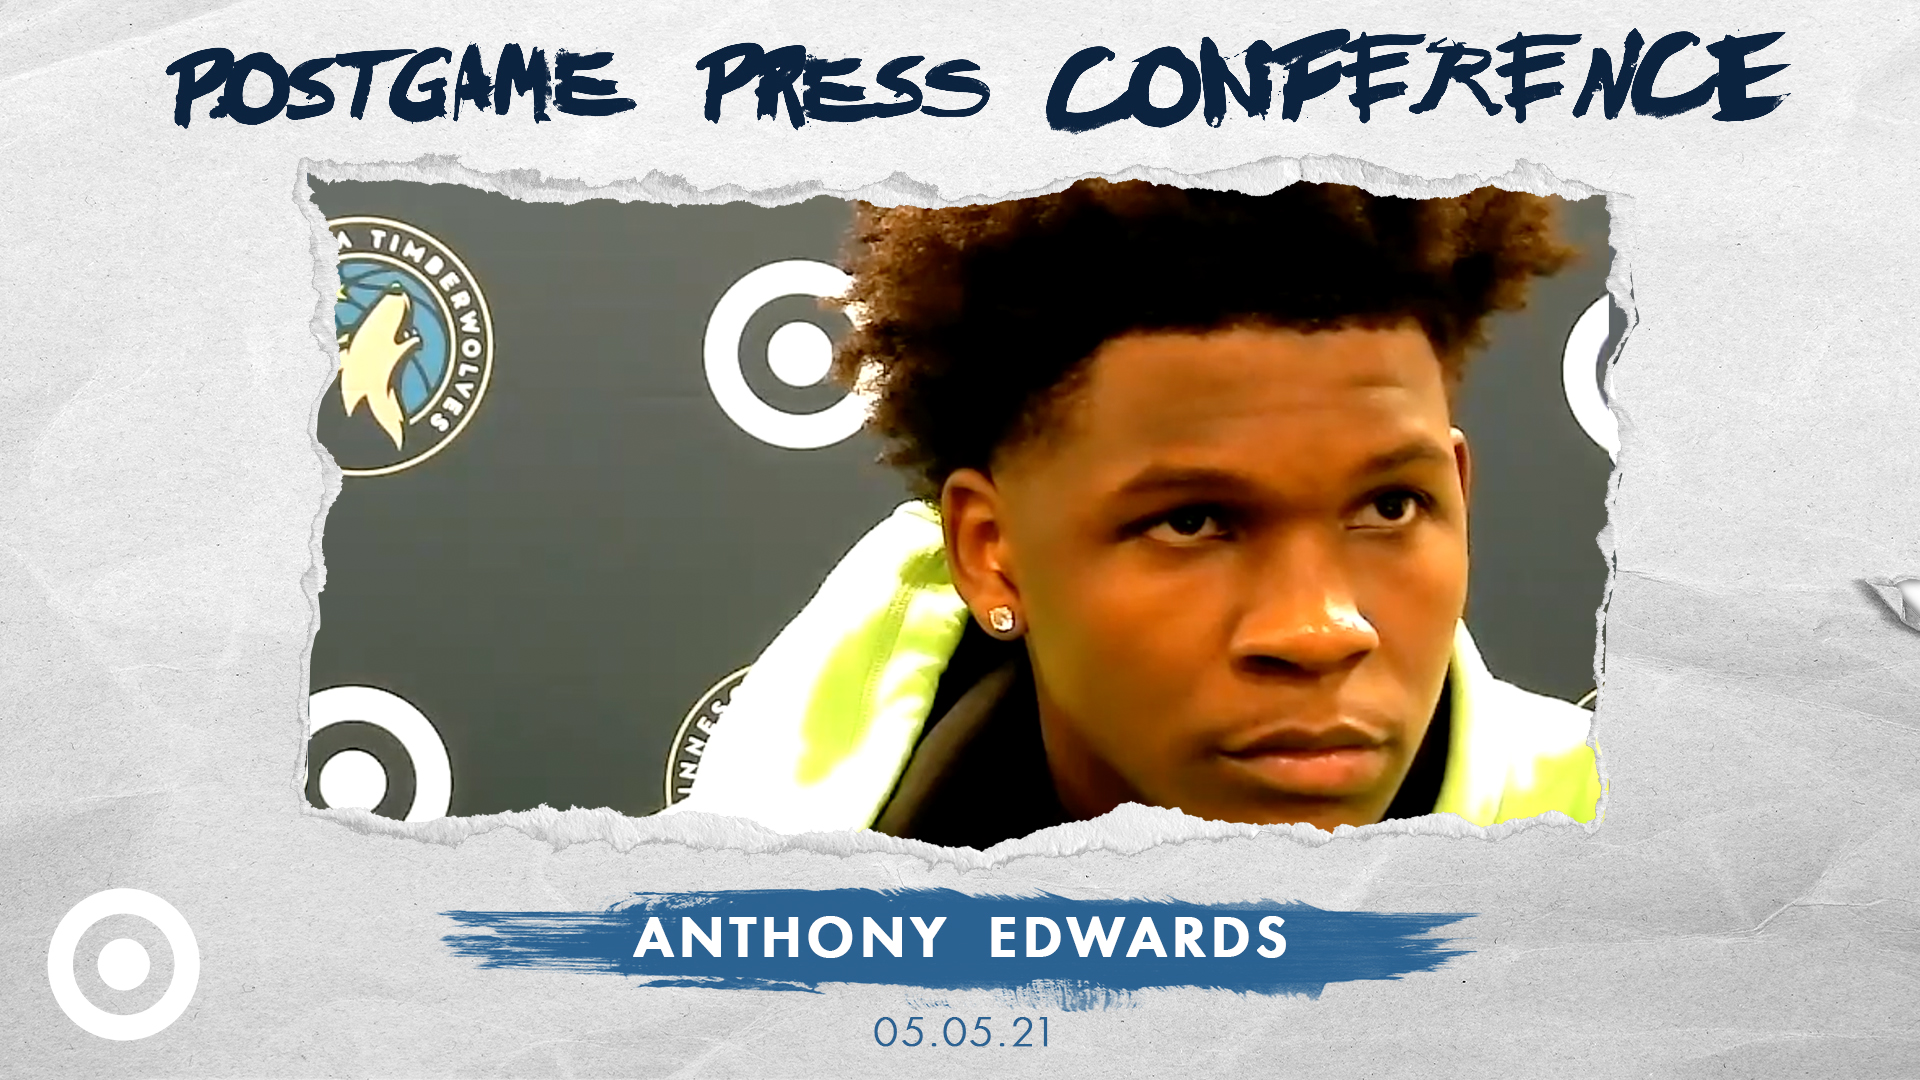 Anthony Edwards Postgame Press Conference - May 5, 2021